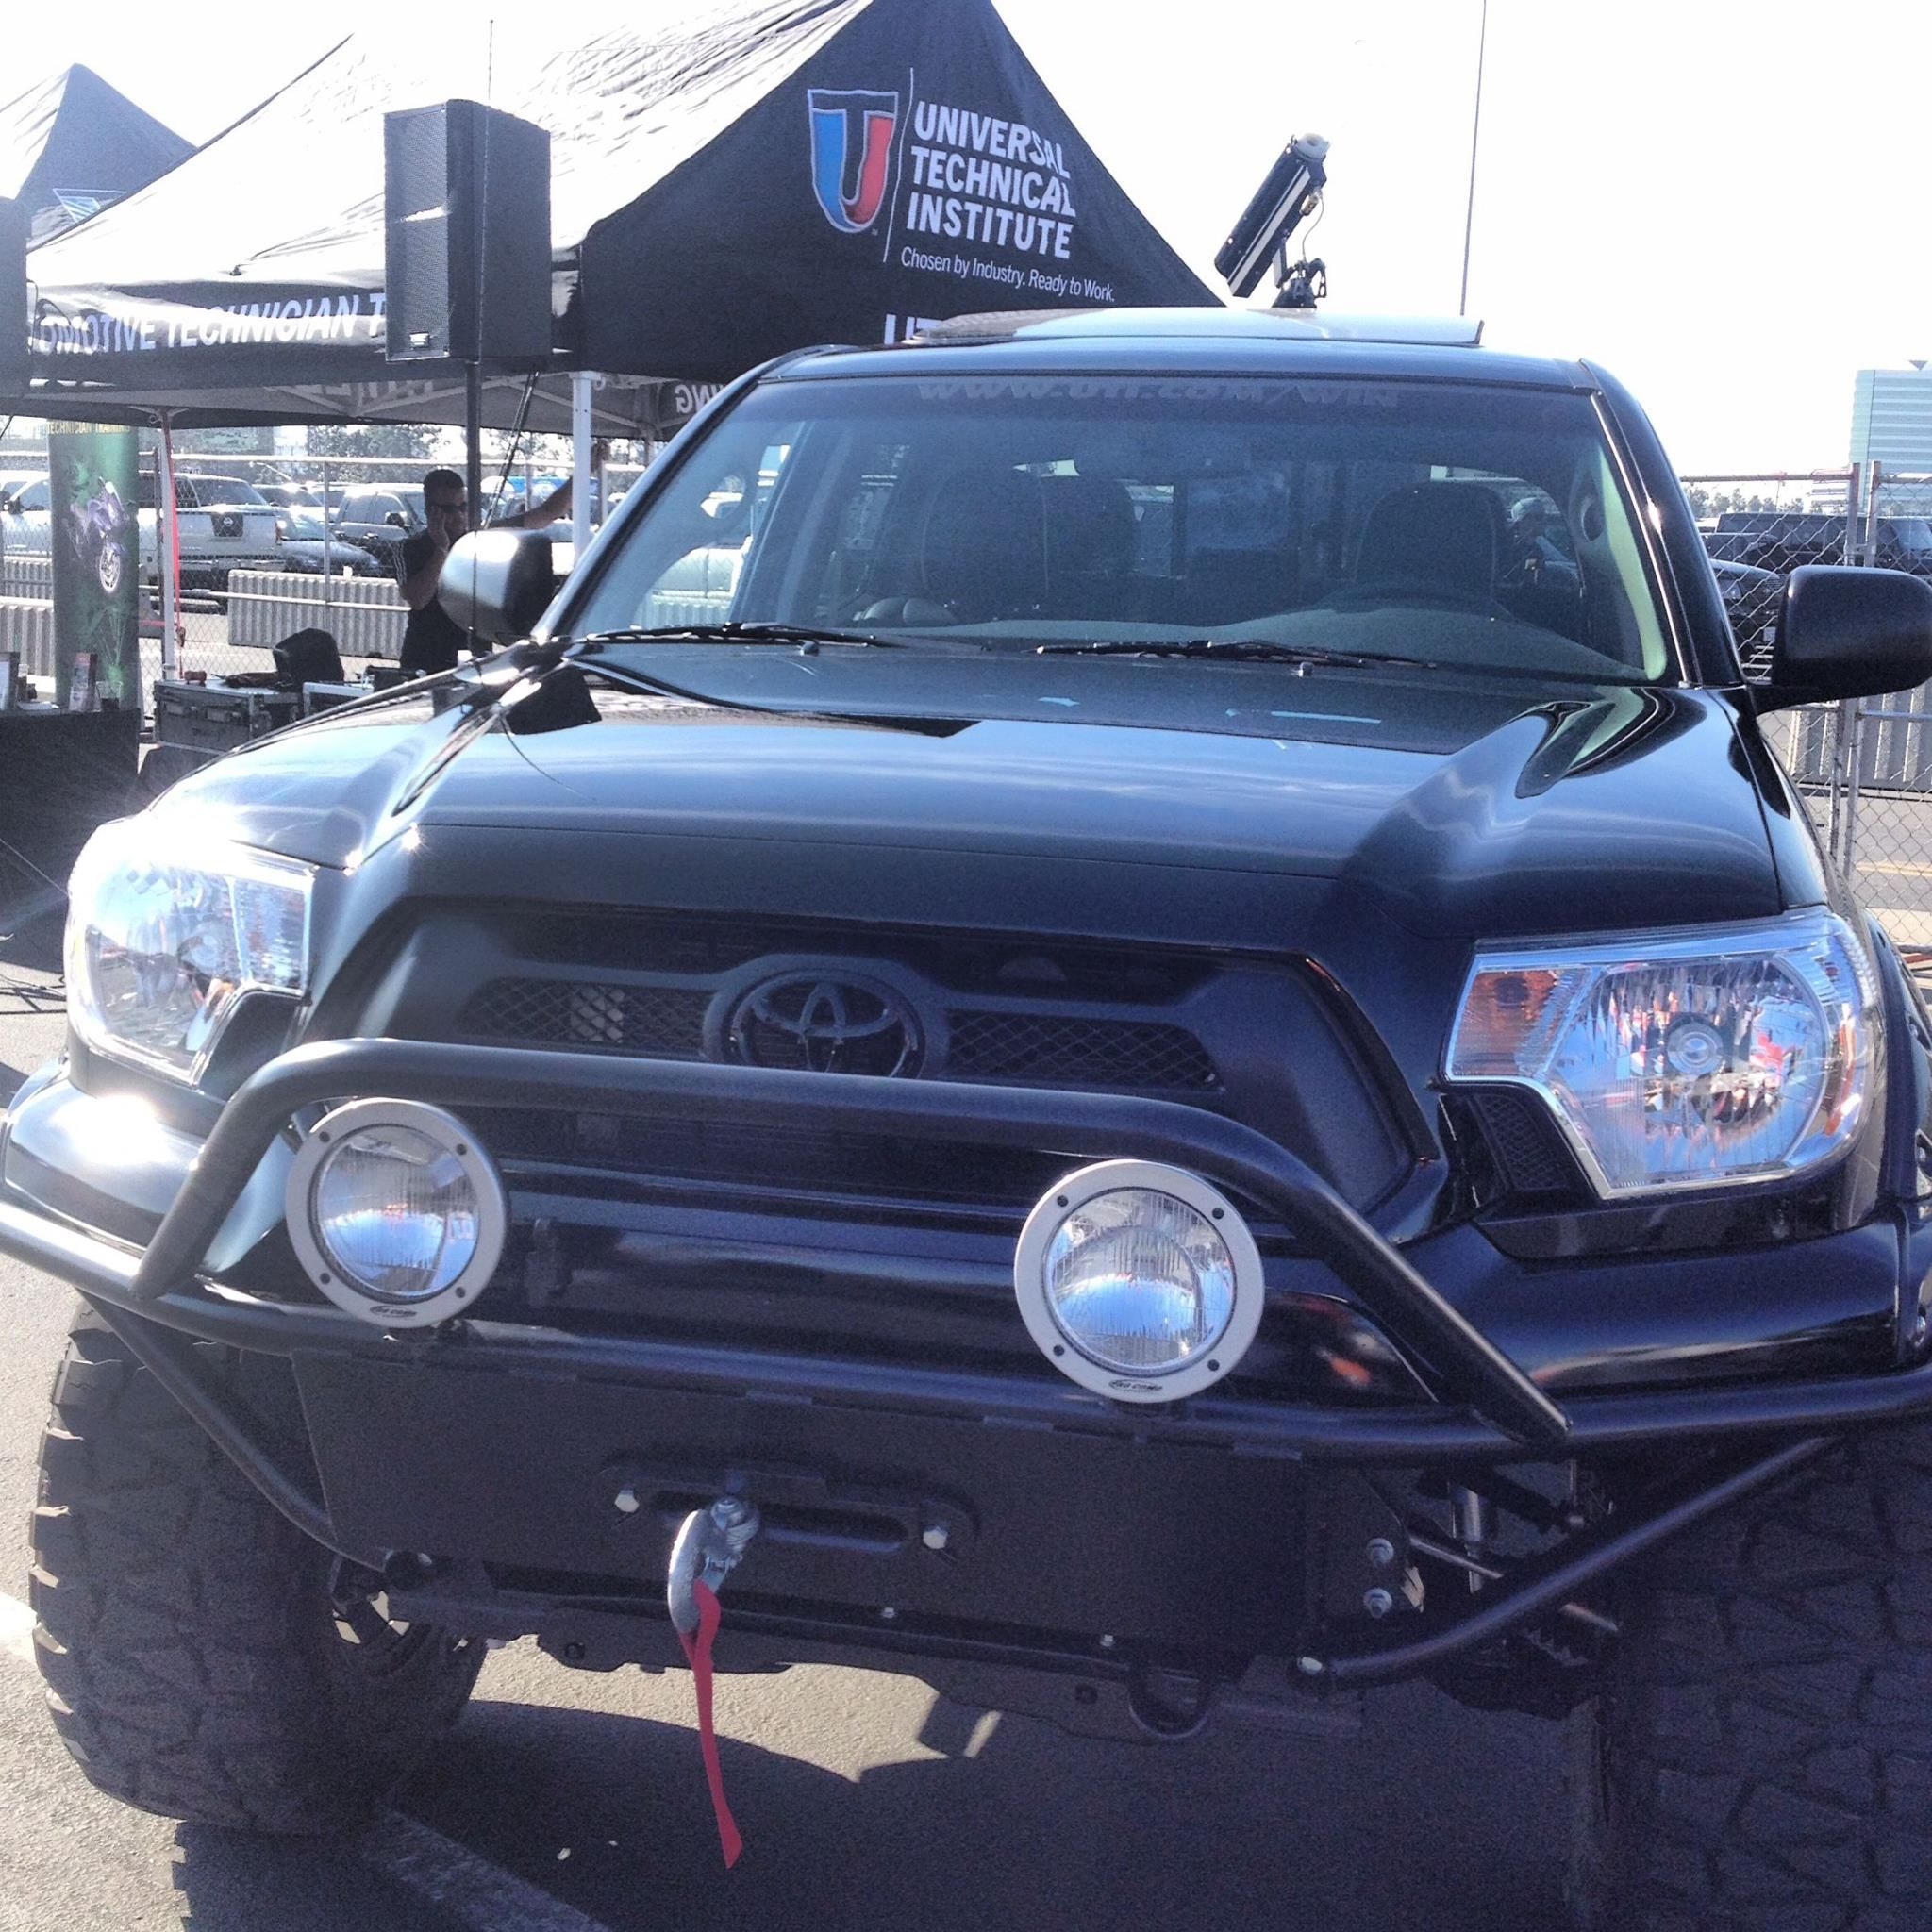 2013 Toyota Tacoma 4x4: YOU Can Enter To Win This Toyota Tacoma 4x4 On Our